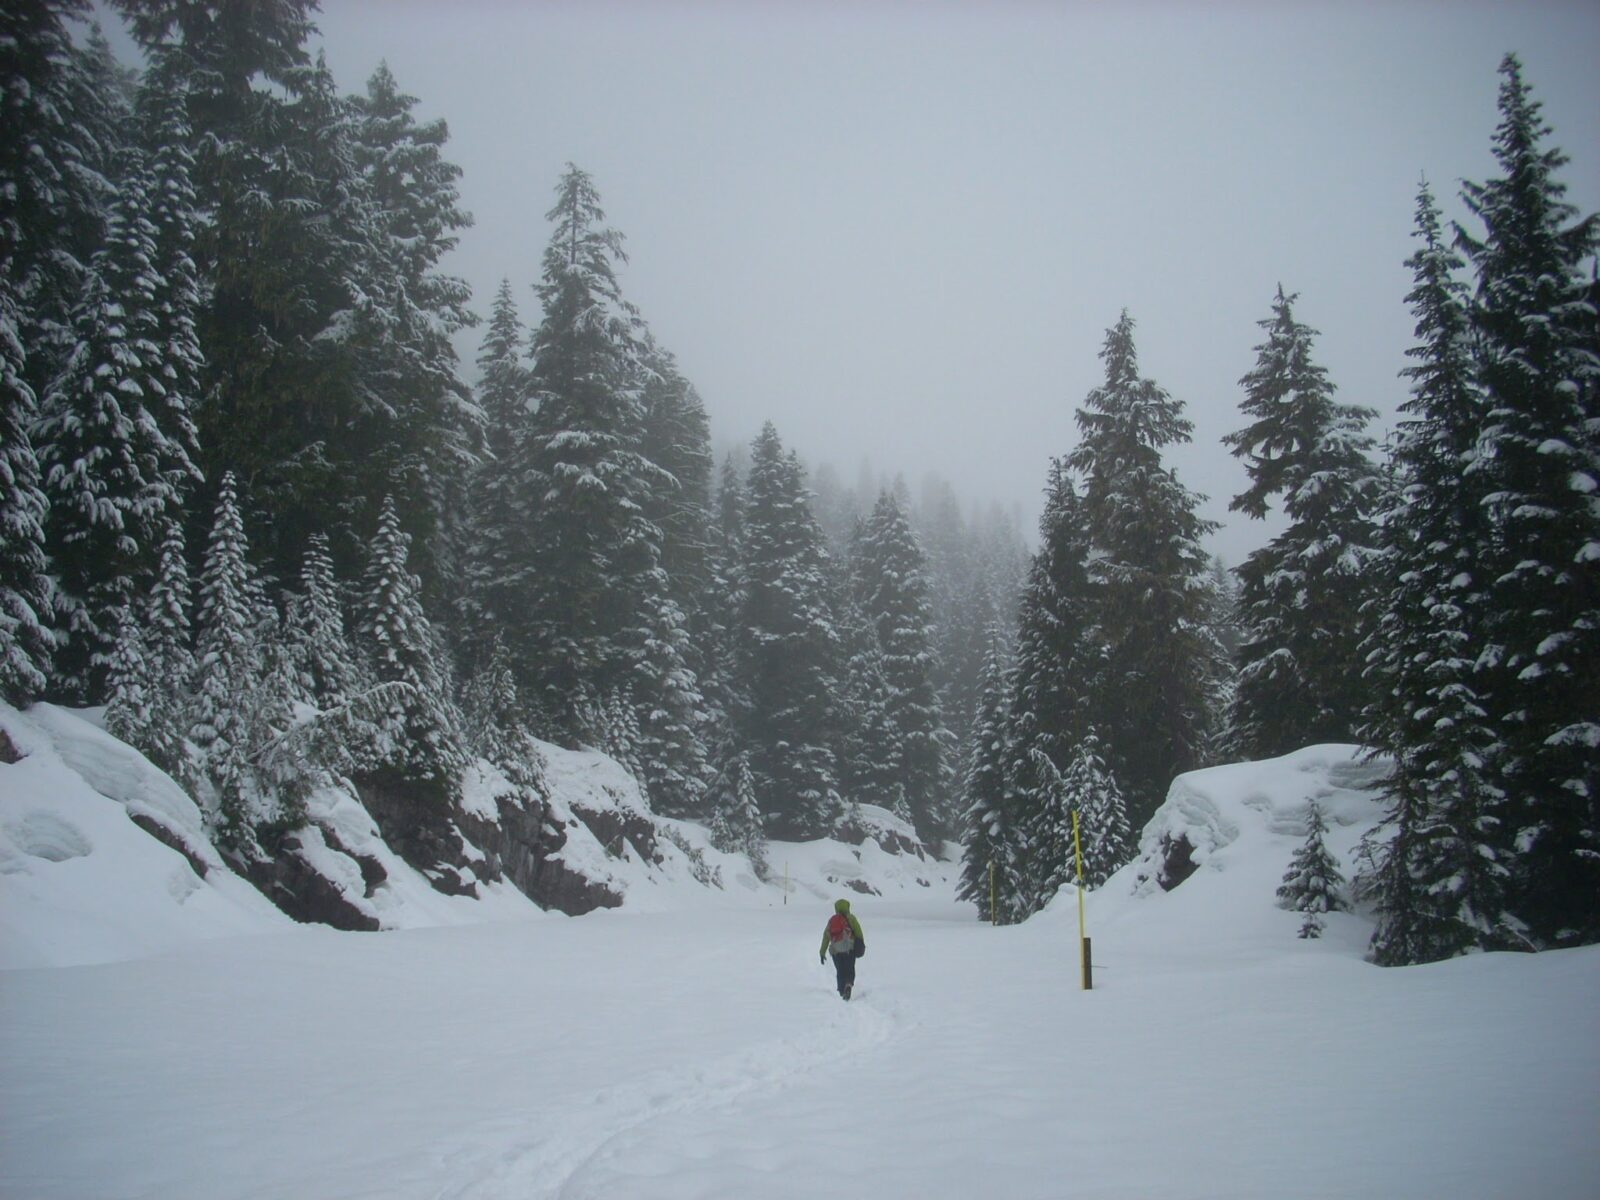 A hiker snowshoeing a closed round through a forest of snow covered evergreen trees